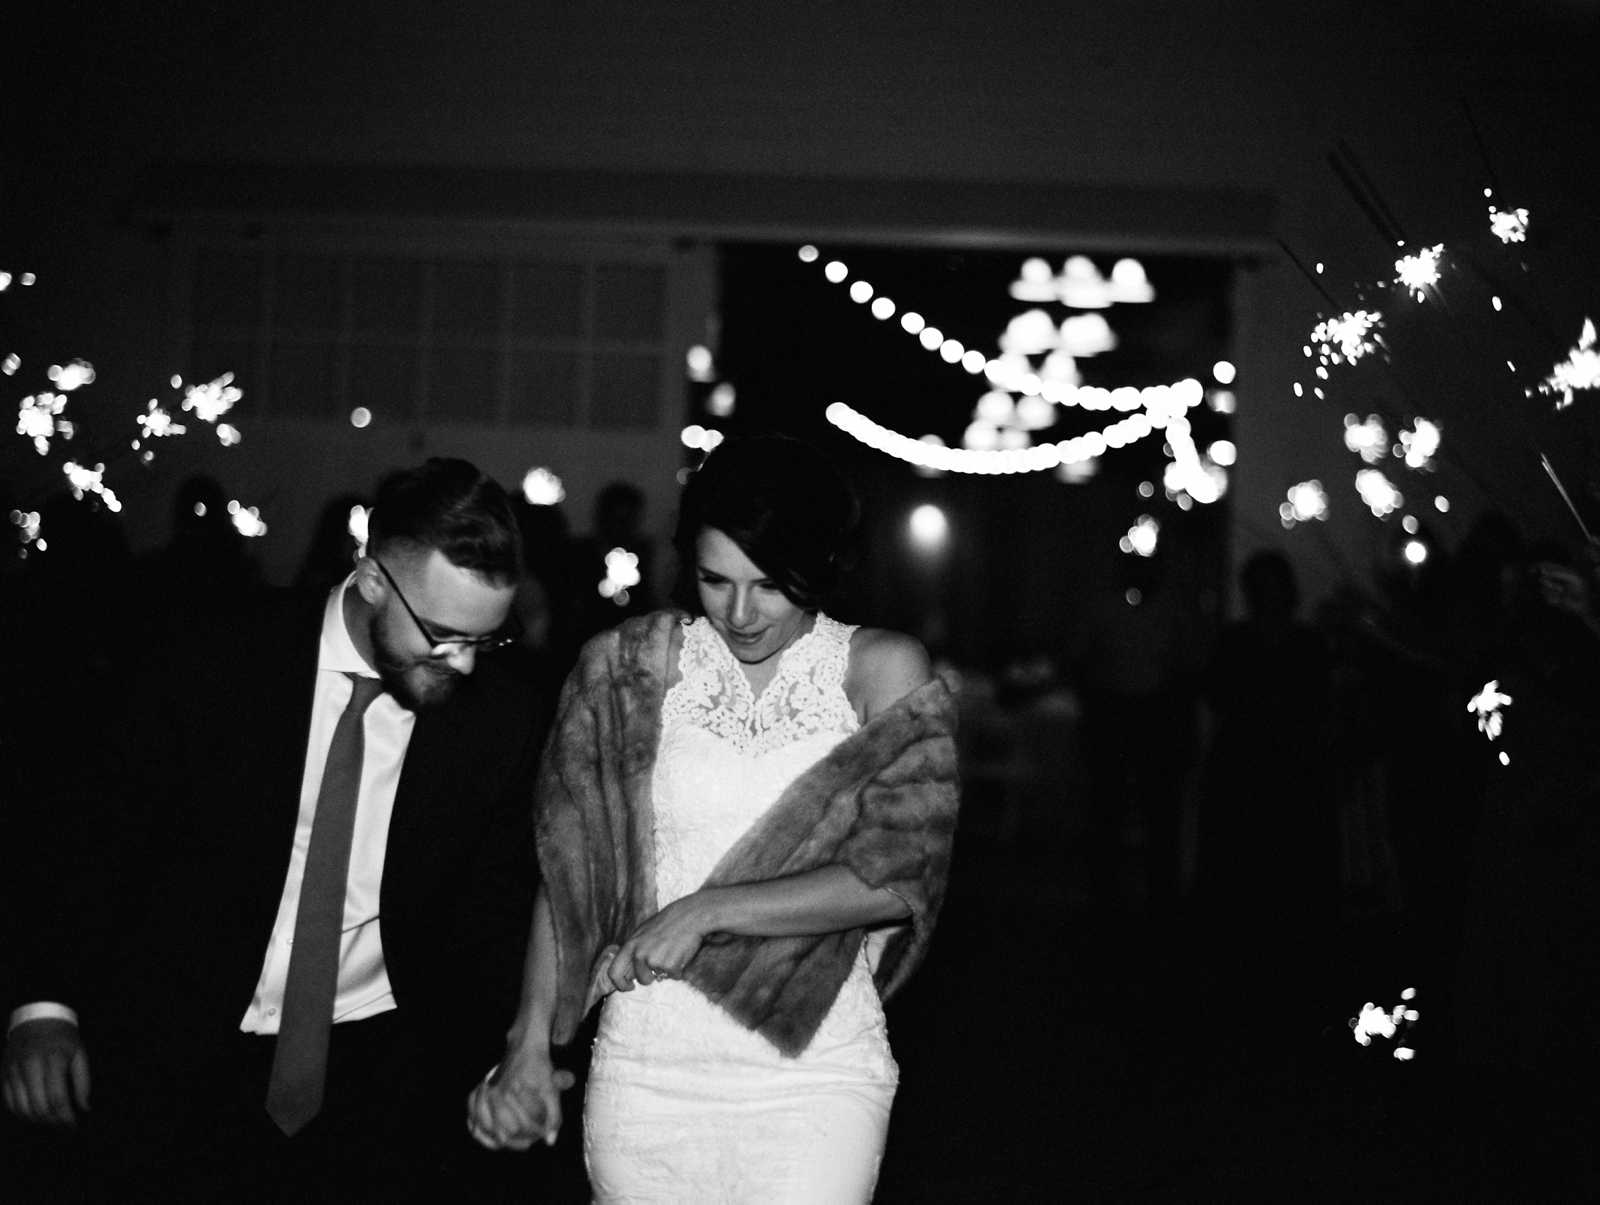 goodwood museum tallahassee wedding photographer - tallahassee florida - shannon griffin_0002.jpg